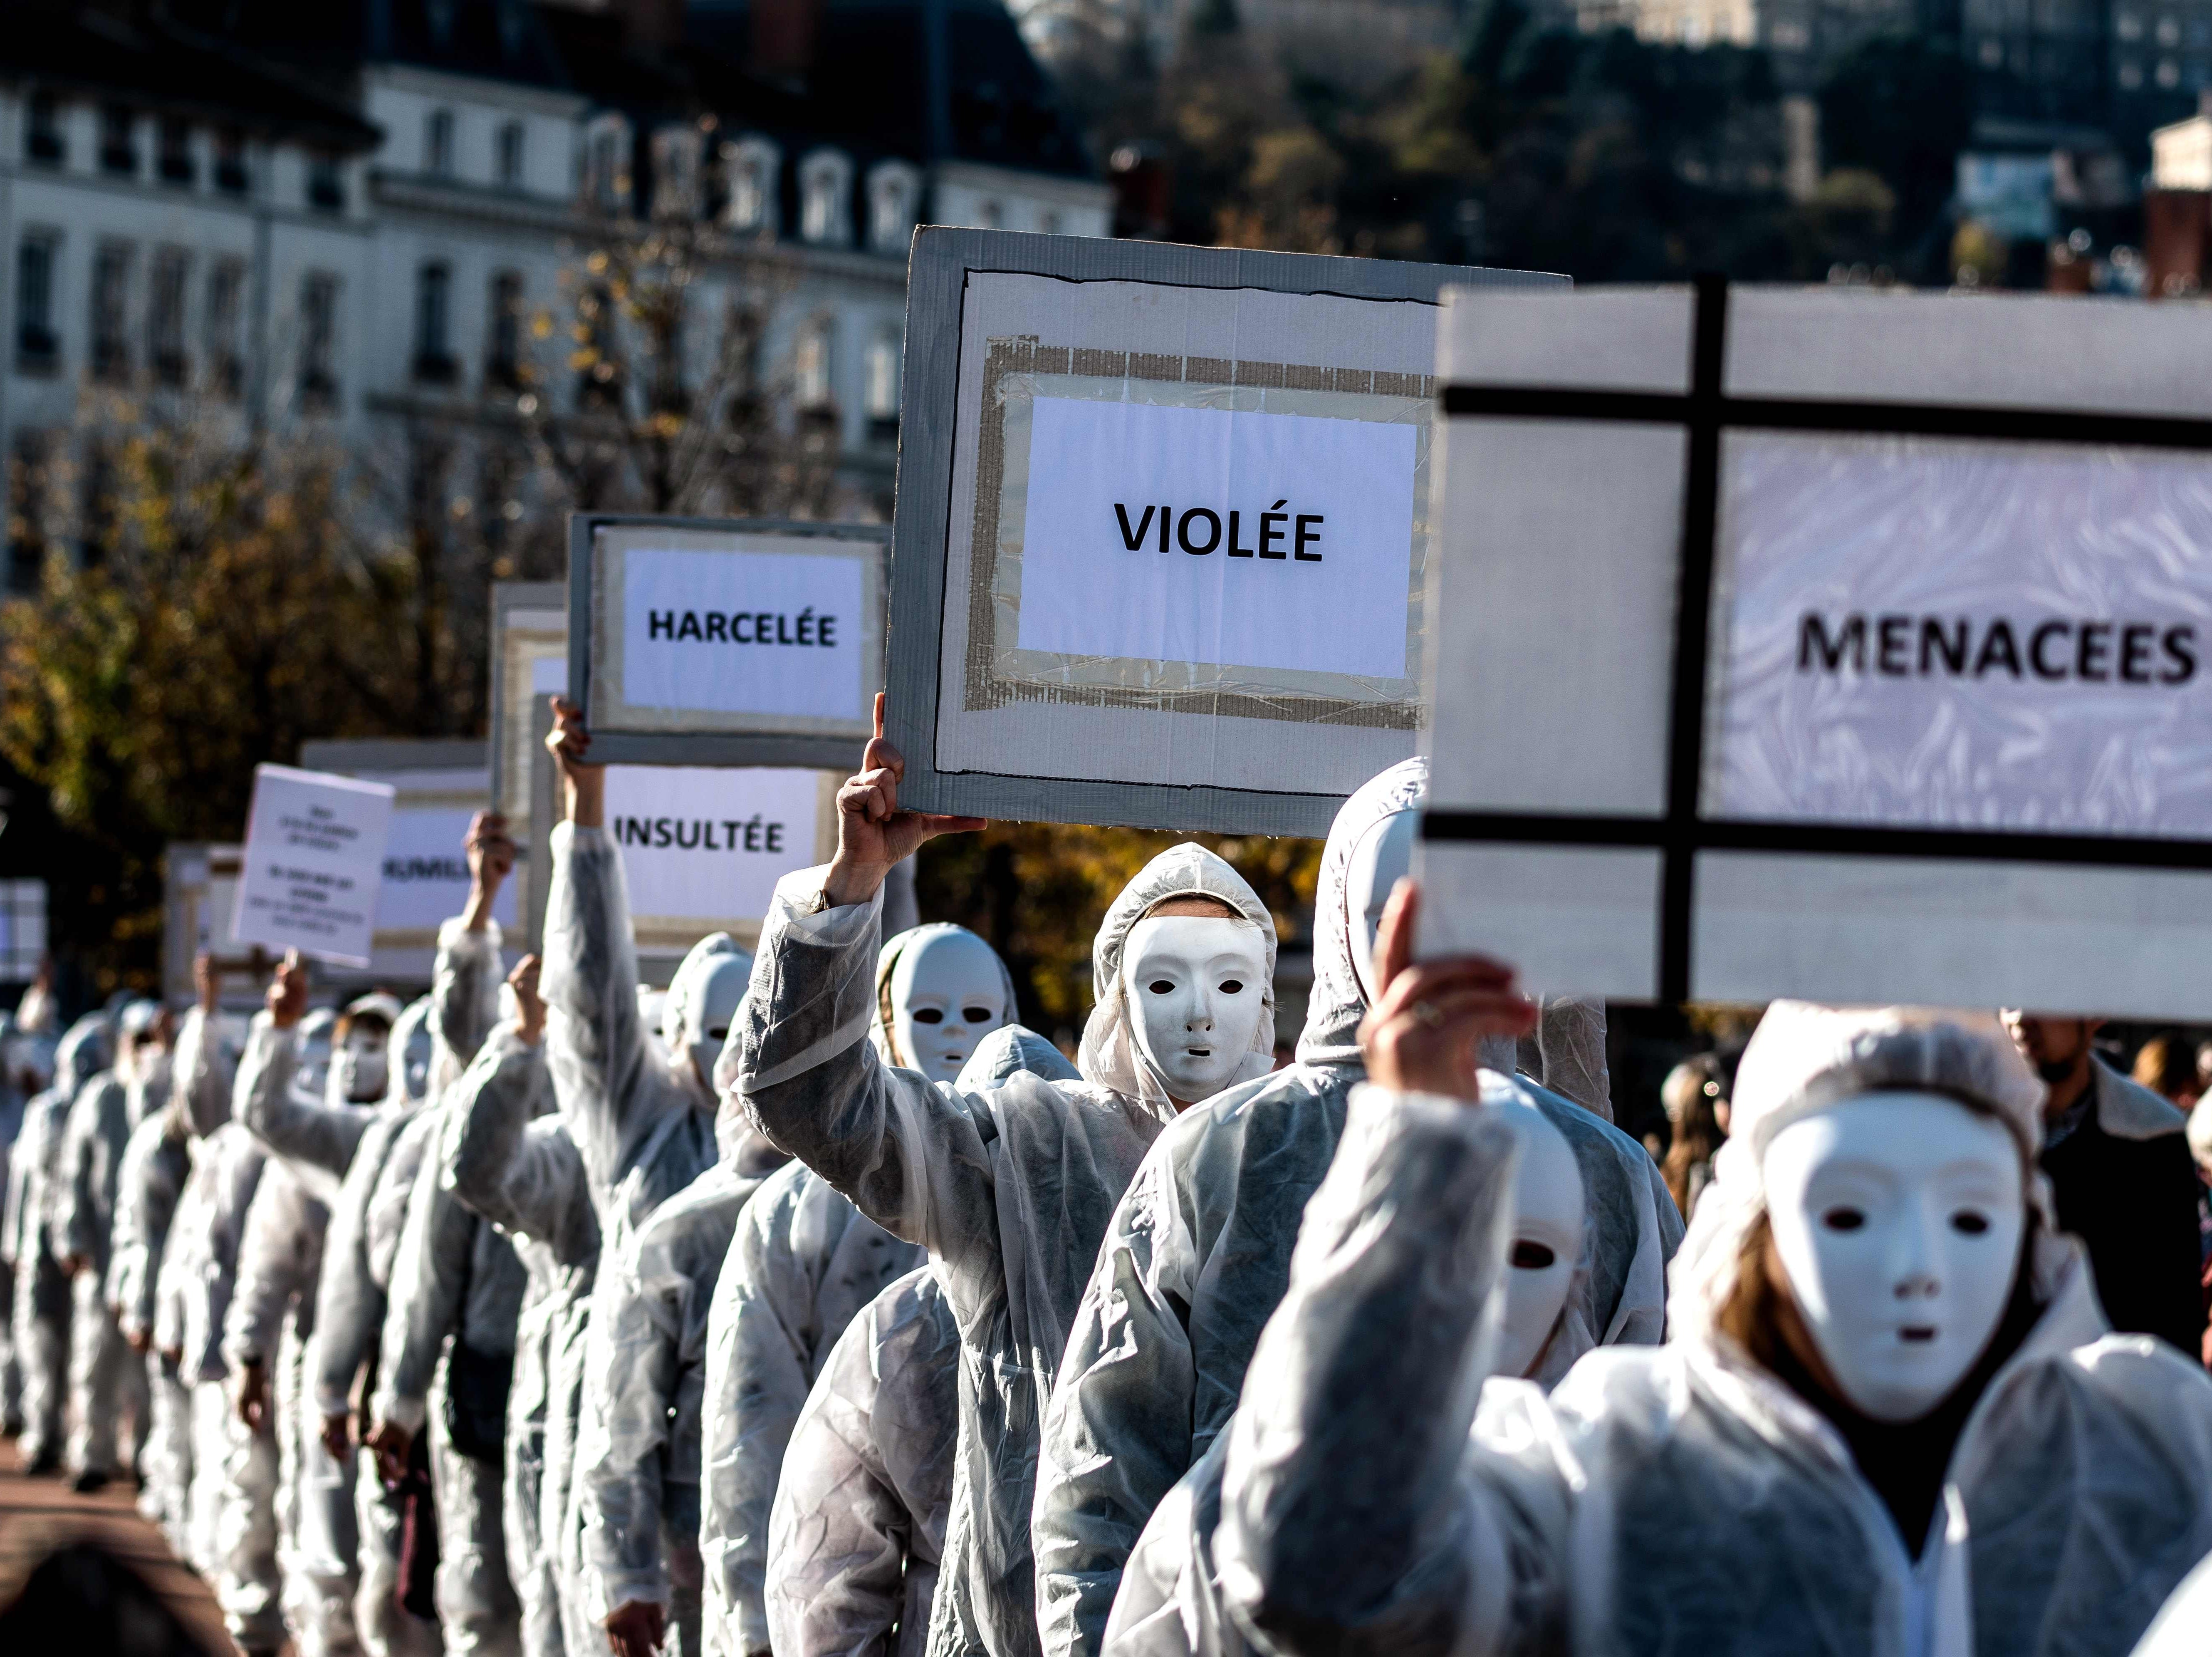 Protestors dressed in white carry placards as they take part in a demonstration in Lyon on Nov. 24, 2018 marking the International Day for the Elimination of violence against Women.